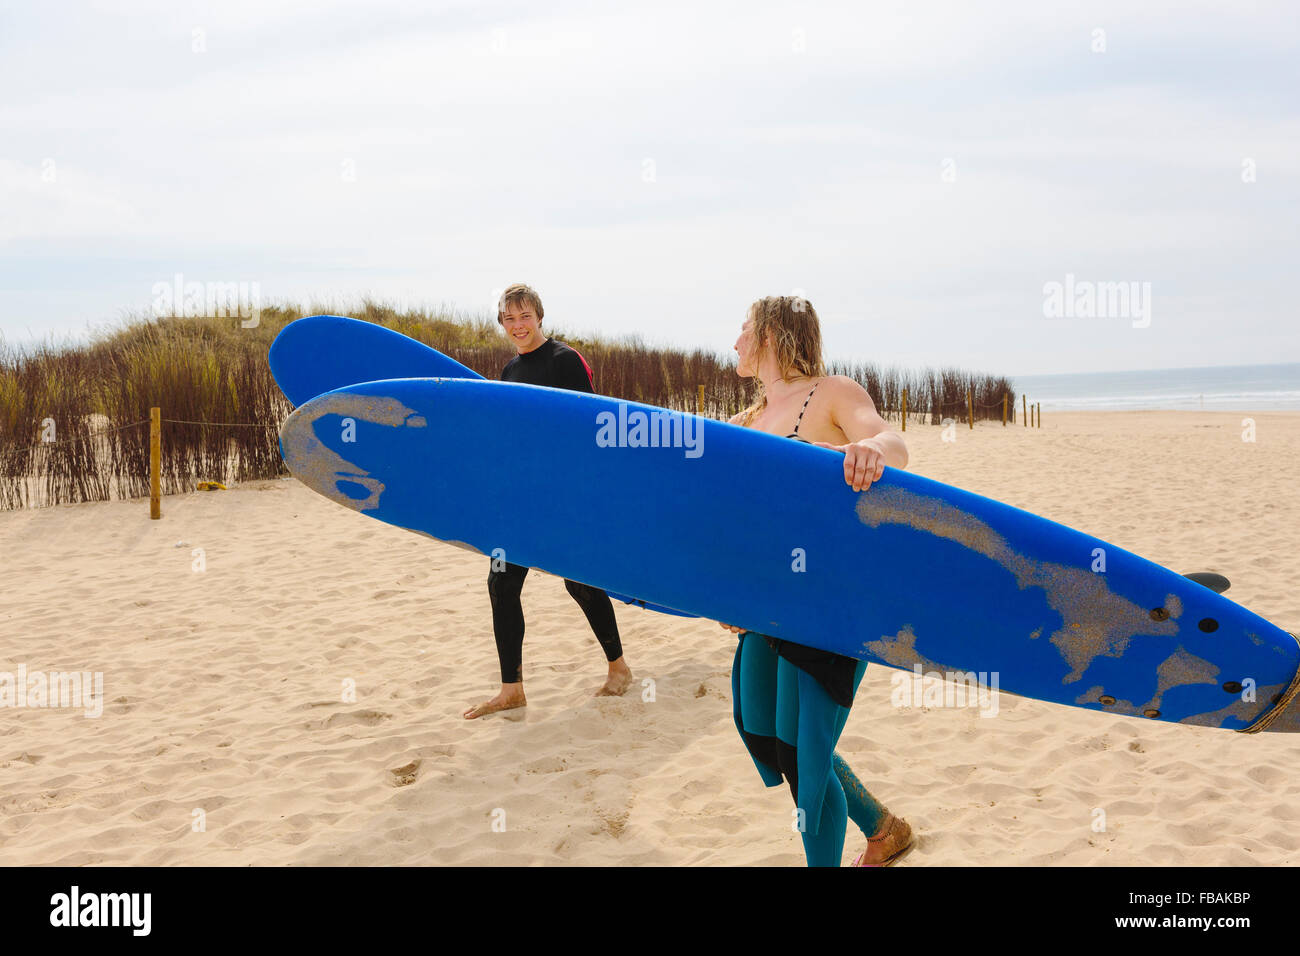 Portugal, Lisbon, Two people carrying surfboards on beach - Stock Image